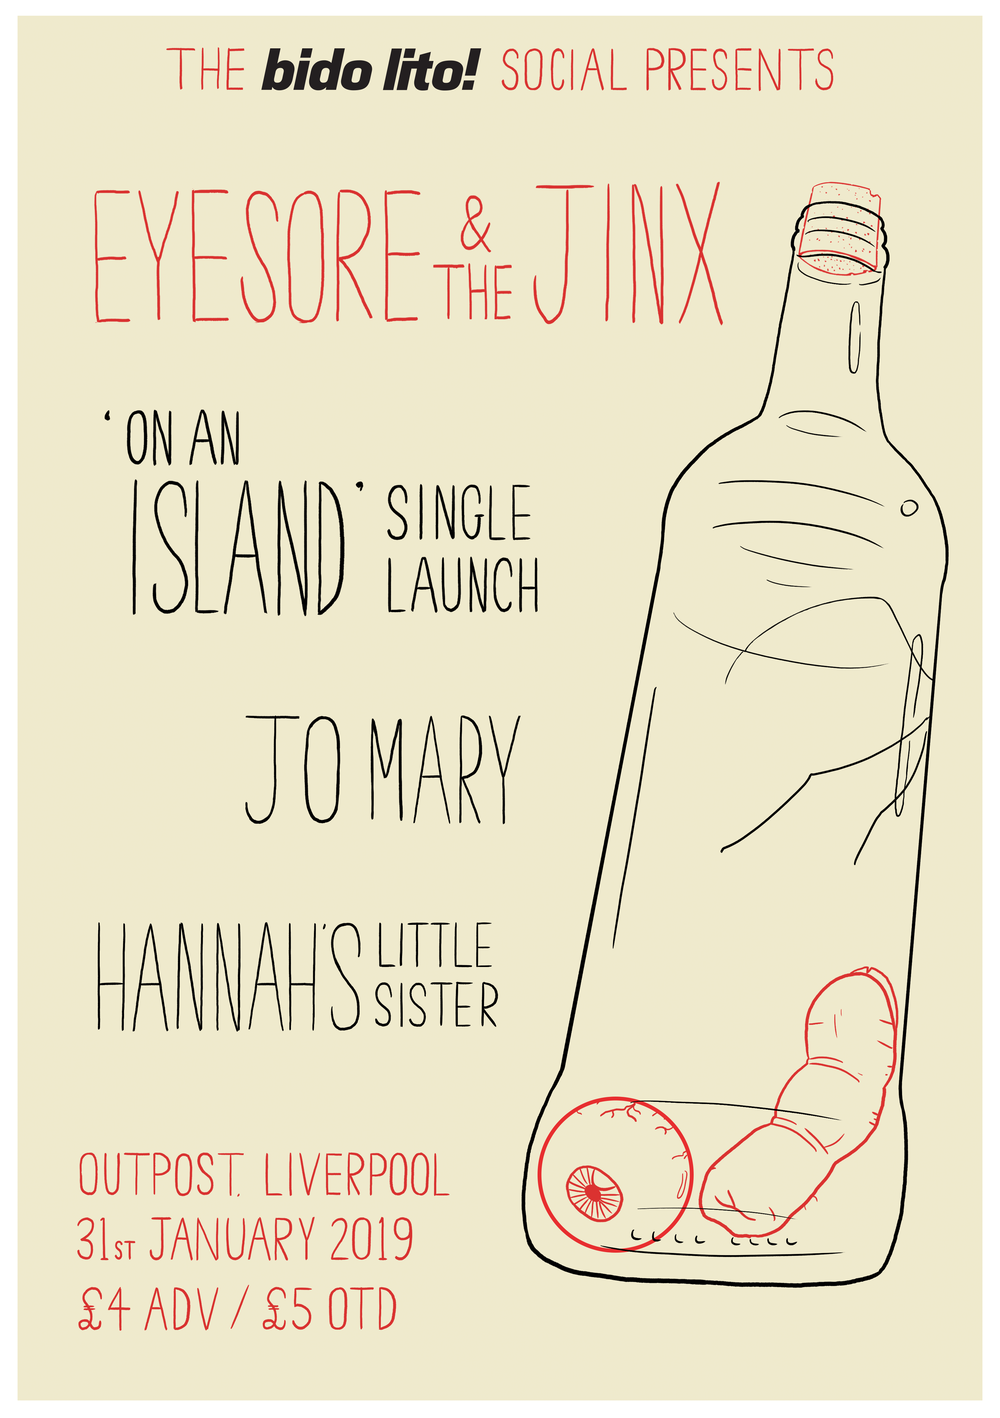 Promotional poster for Eyesore & the Jinx 'On and Island' Single Launch.   Published in Bido Lito! #95 2018